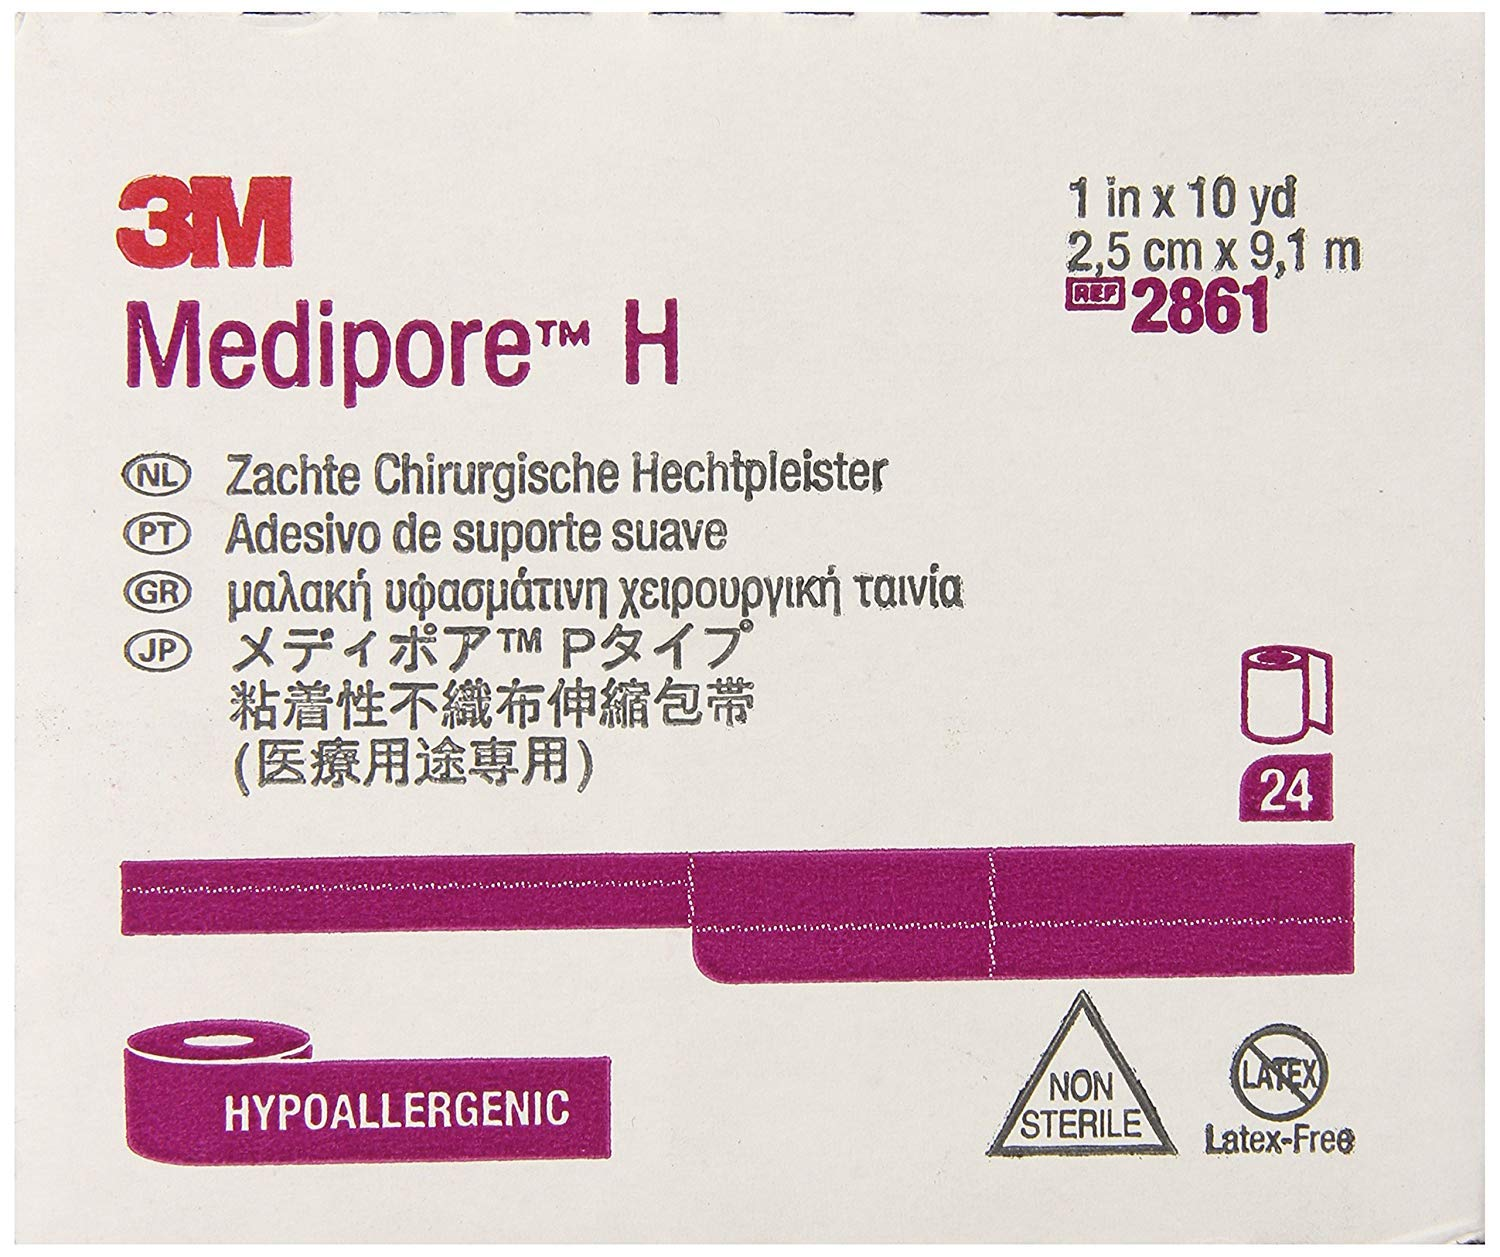 Medipore 3m 2861 H Soft Cloth Surgical Tape 1'' x 10 Yards - Case of 24 Rolls by Medipore